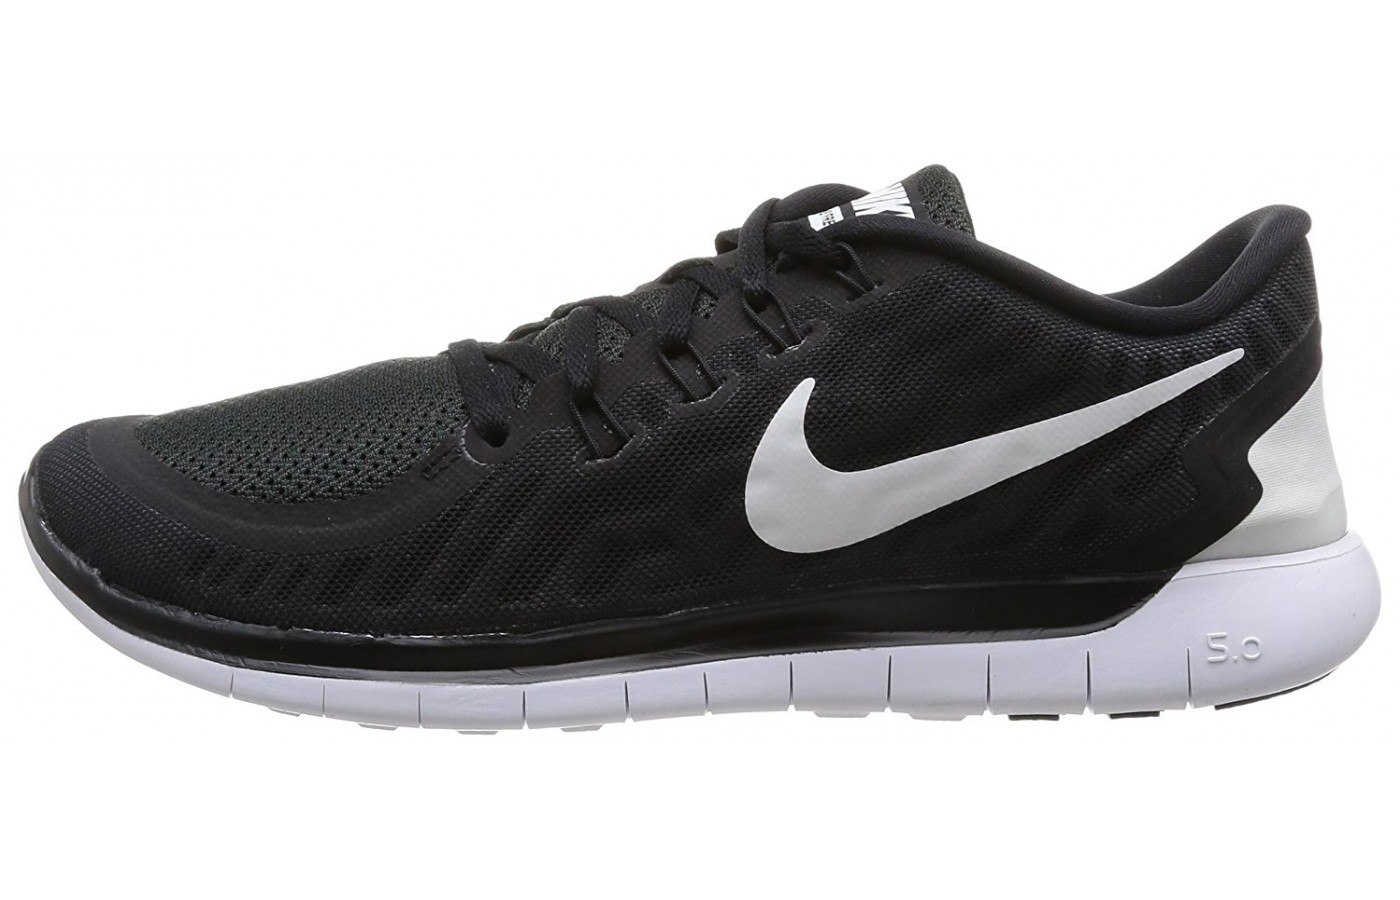 815f2b3f50c2 Nike Free 5.0 Reviewed   Tested for Performance in 2019